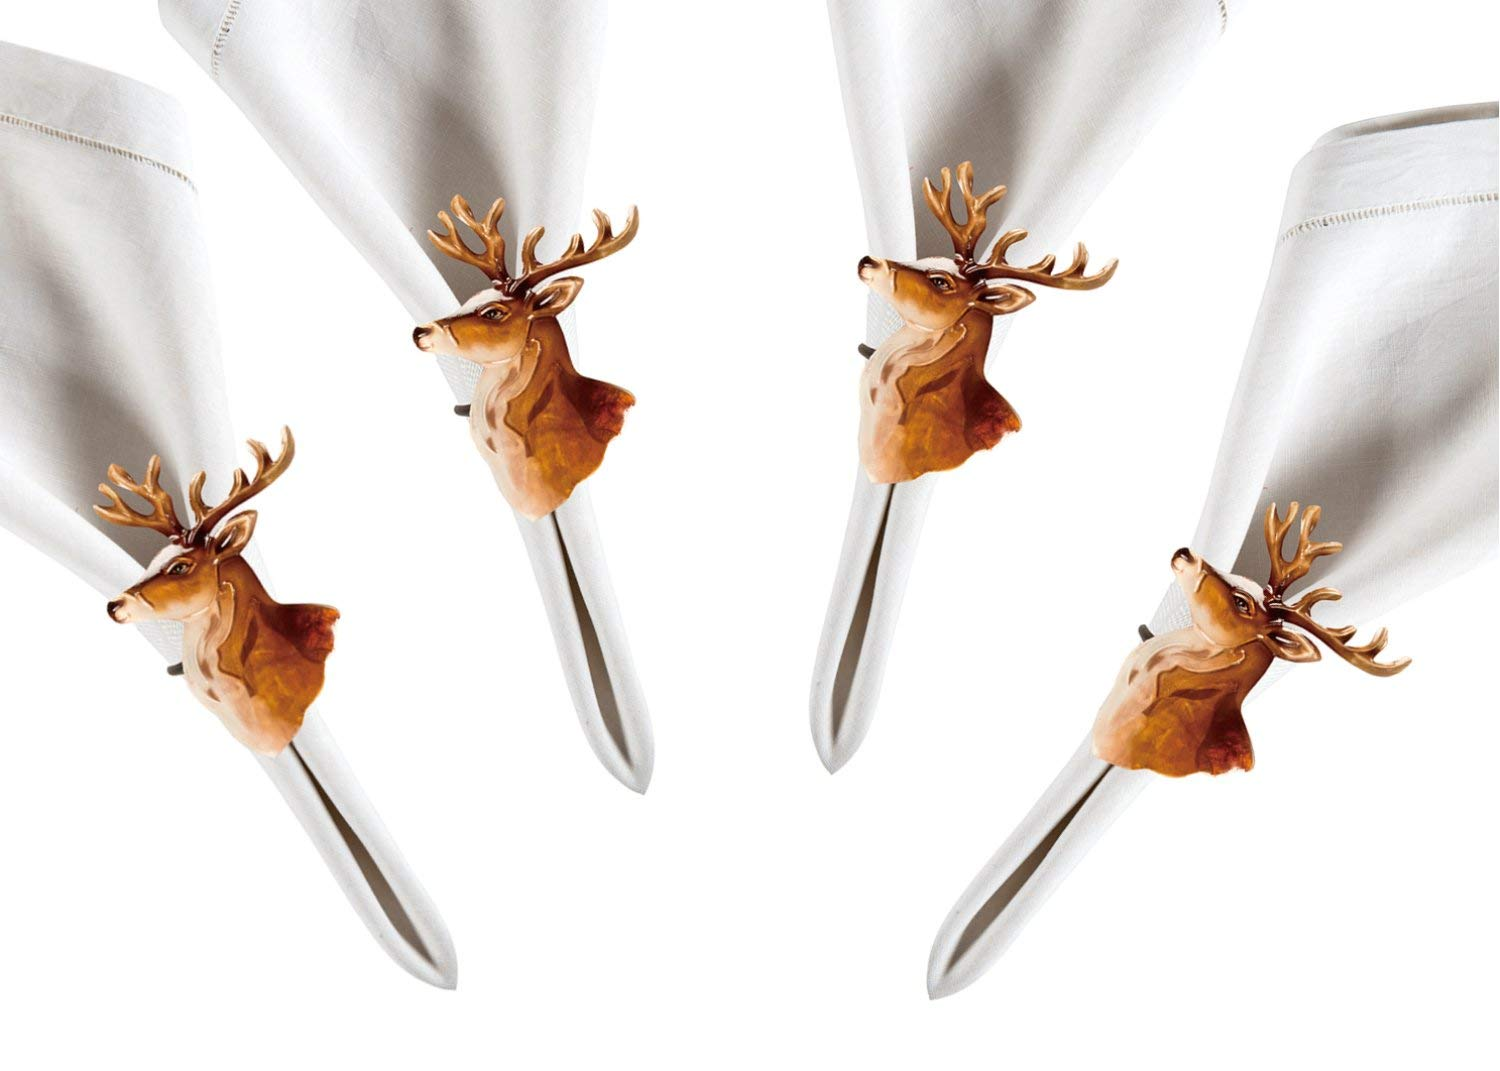 Lake House Rustic Deer Head Pearlized Capiz Shell Napkin Rings Set of 4